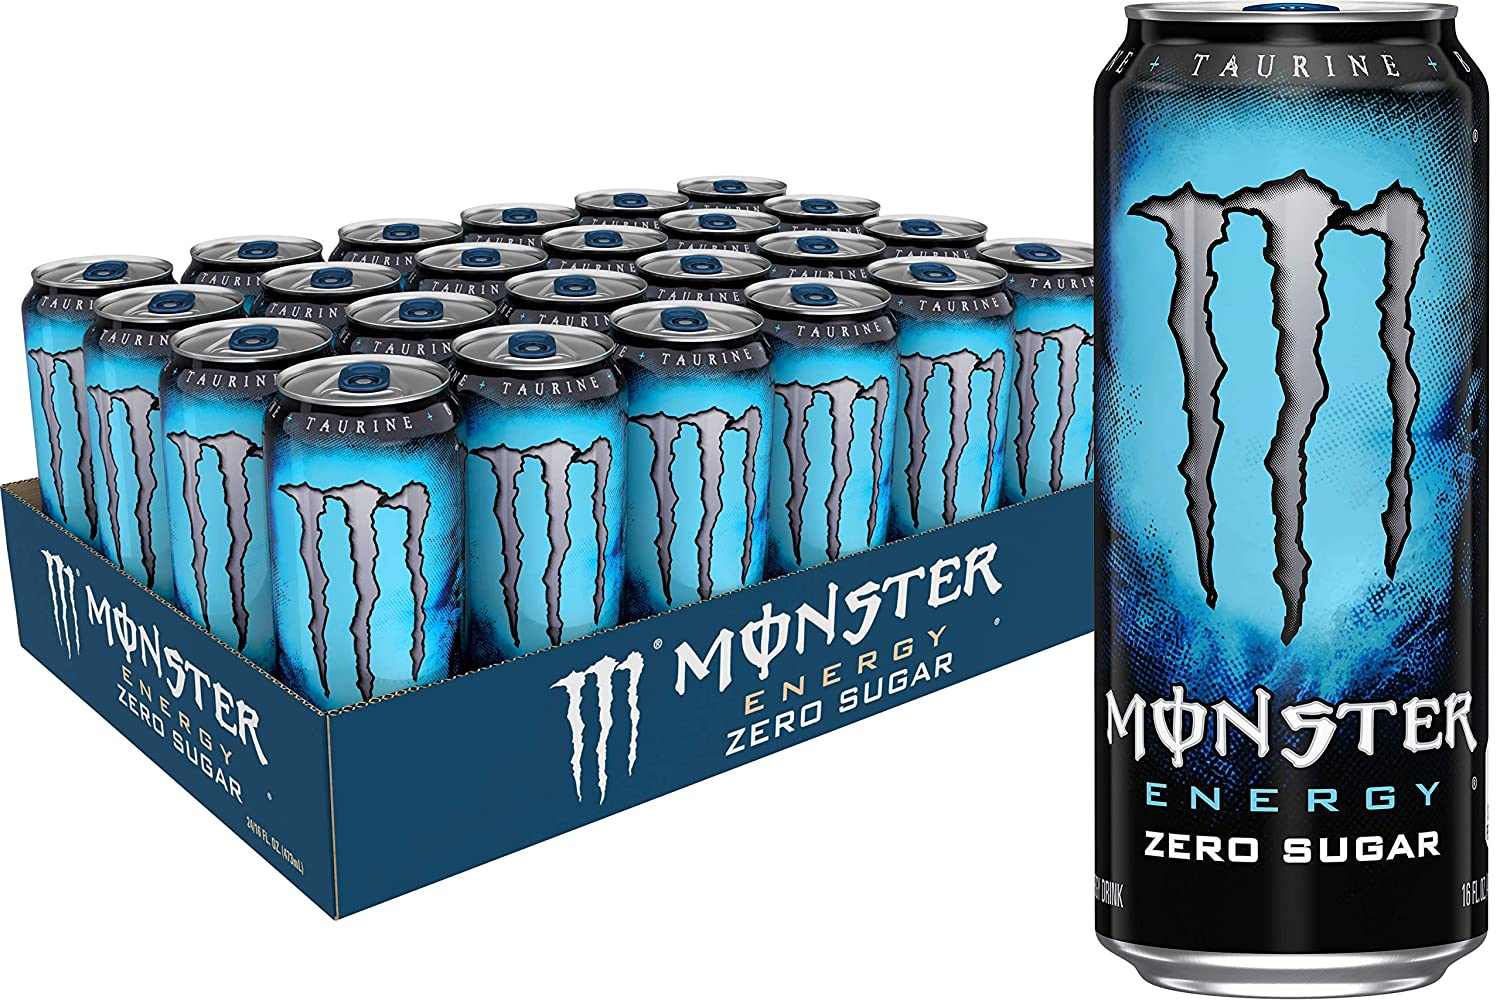 Monster Energy Zero Sugar, Low Calorie Energy Drink, 16 Ounce (Pack of 24) : Grocery & Gourmet Food